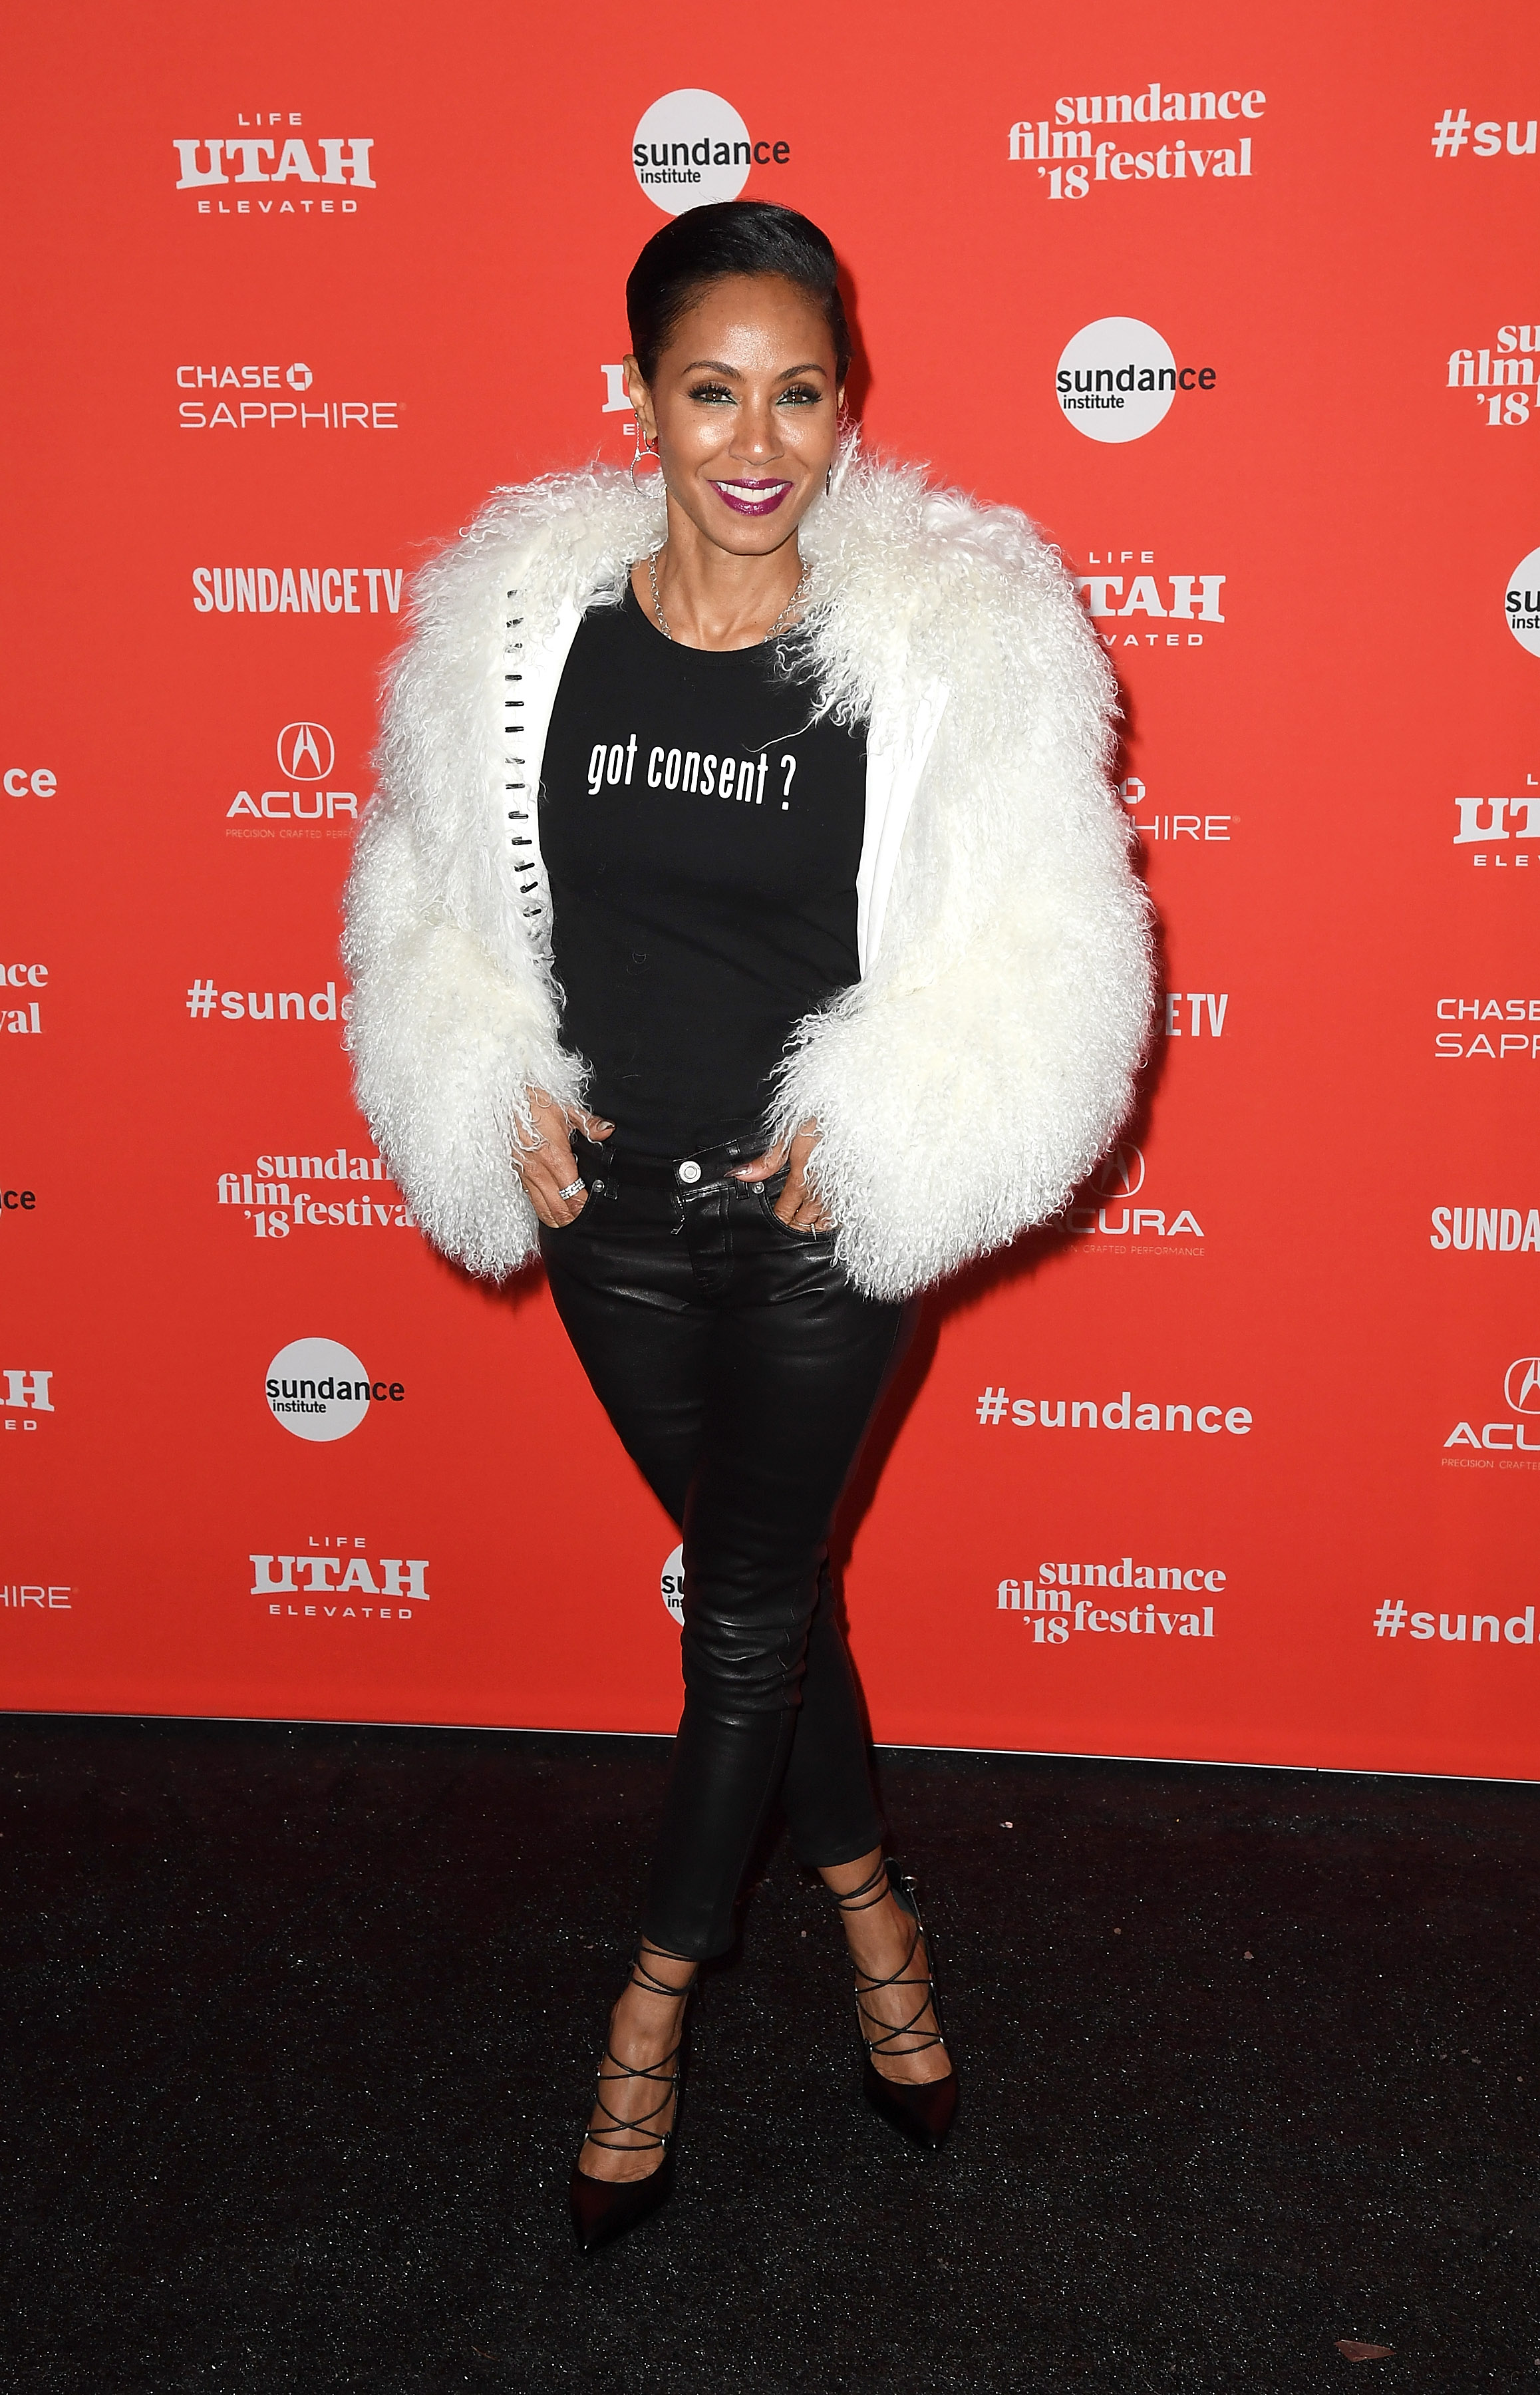 Jada Pinkett Smith Wore A Quot Got Consent Quot Shirt From A Long